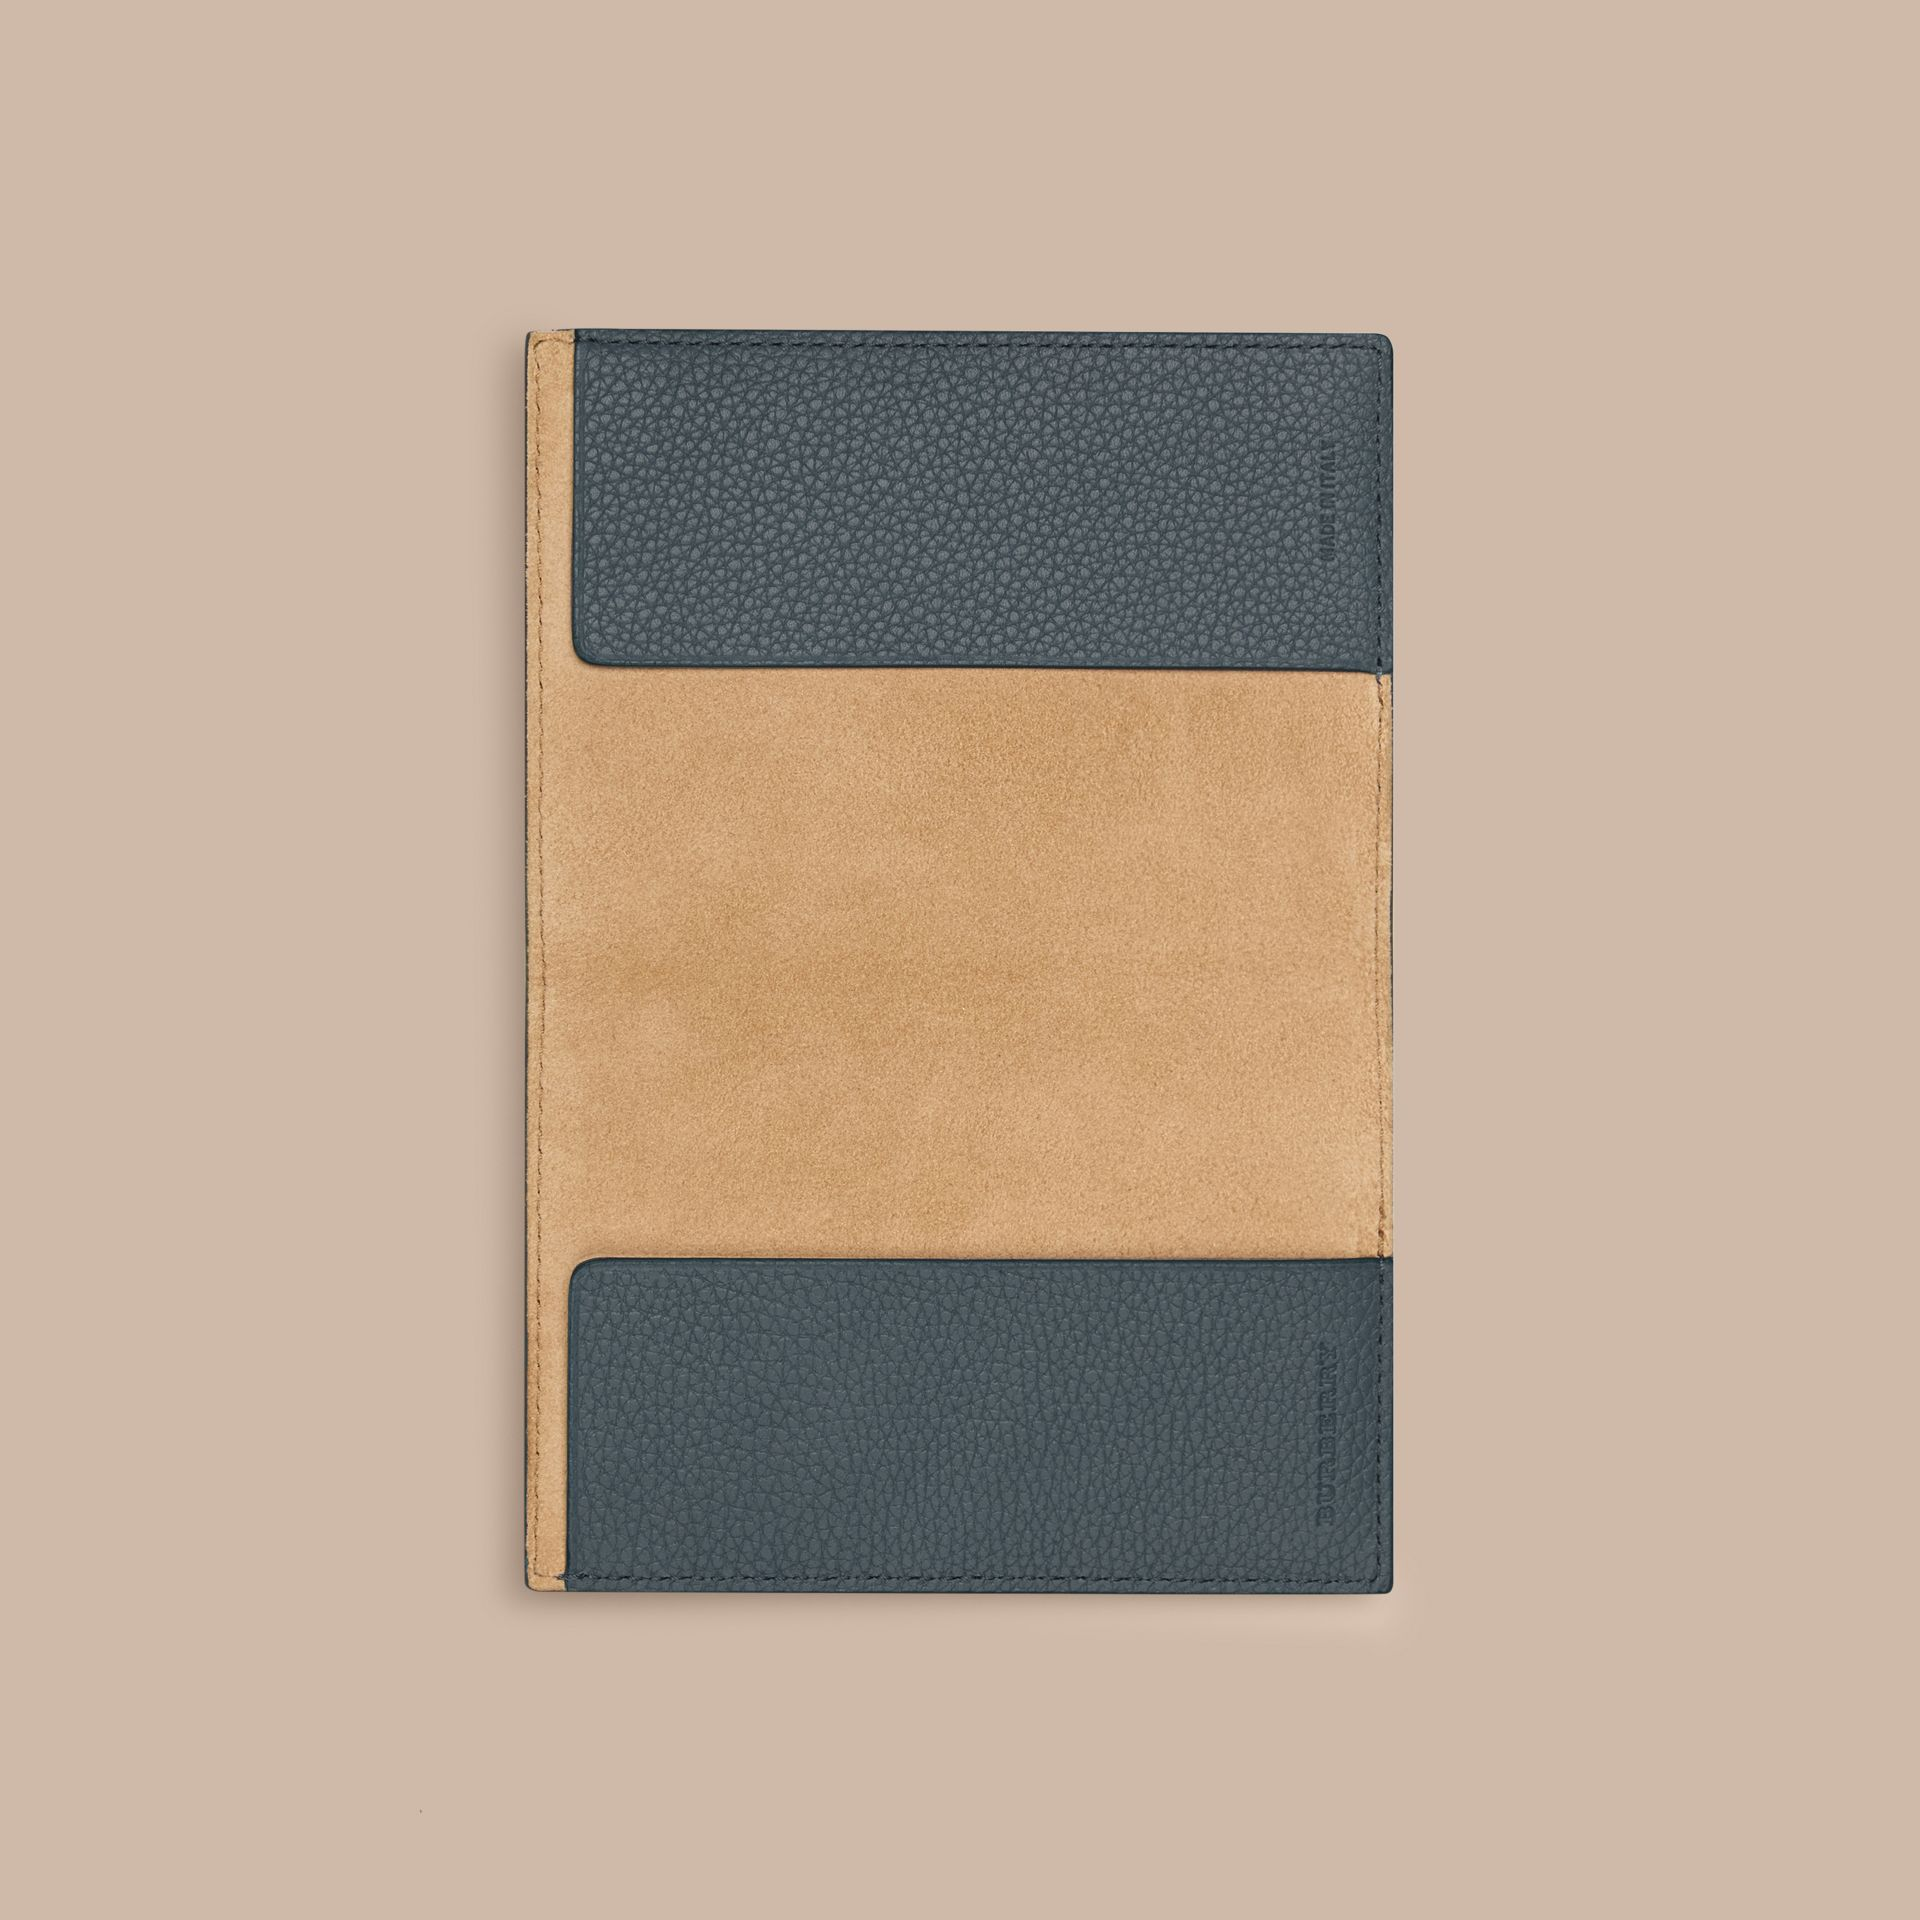 Grainy Leather Passport Cover in Dusty Teal | Burberry - gallery image 2